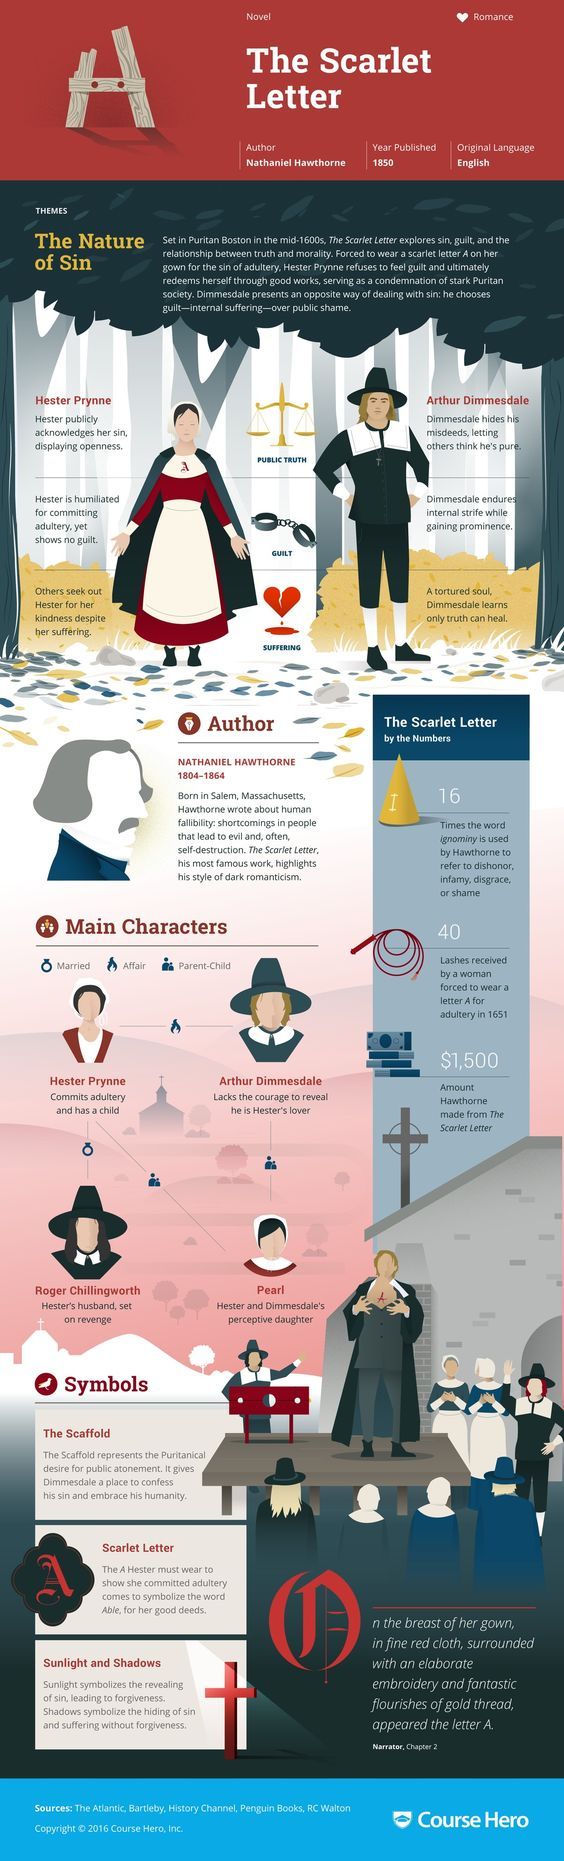 Check-out-this-awesome-The-Scarlet-Letter-infographic-from-Course-Hero-wallpaper-wp3604012